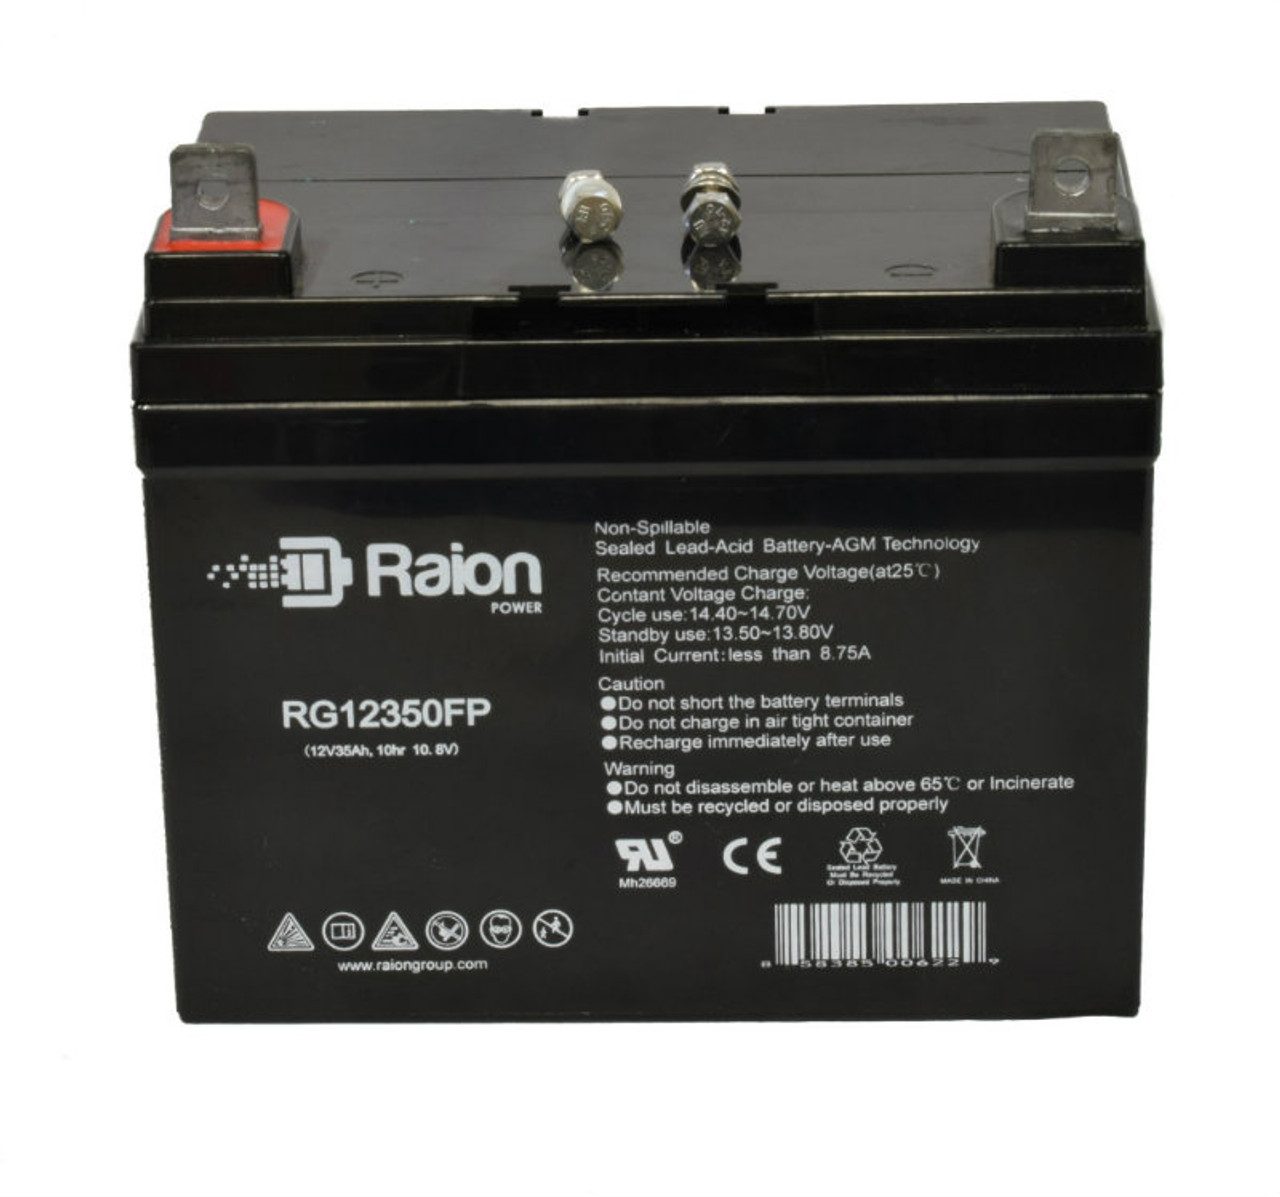 RG12350FP Sealed Lead Acid Battery Pack For Quantum Rehab Q610 Mobility Scooter